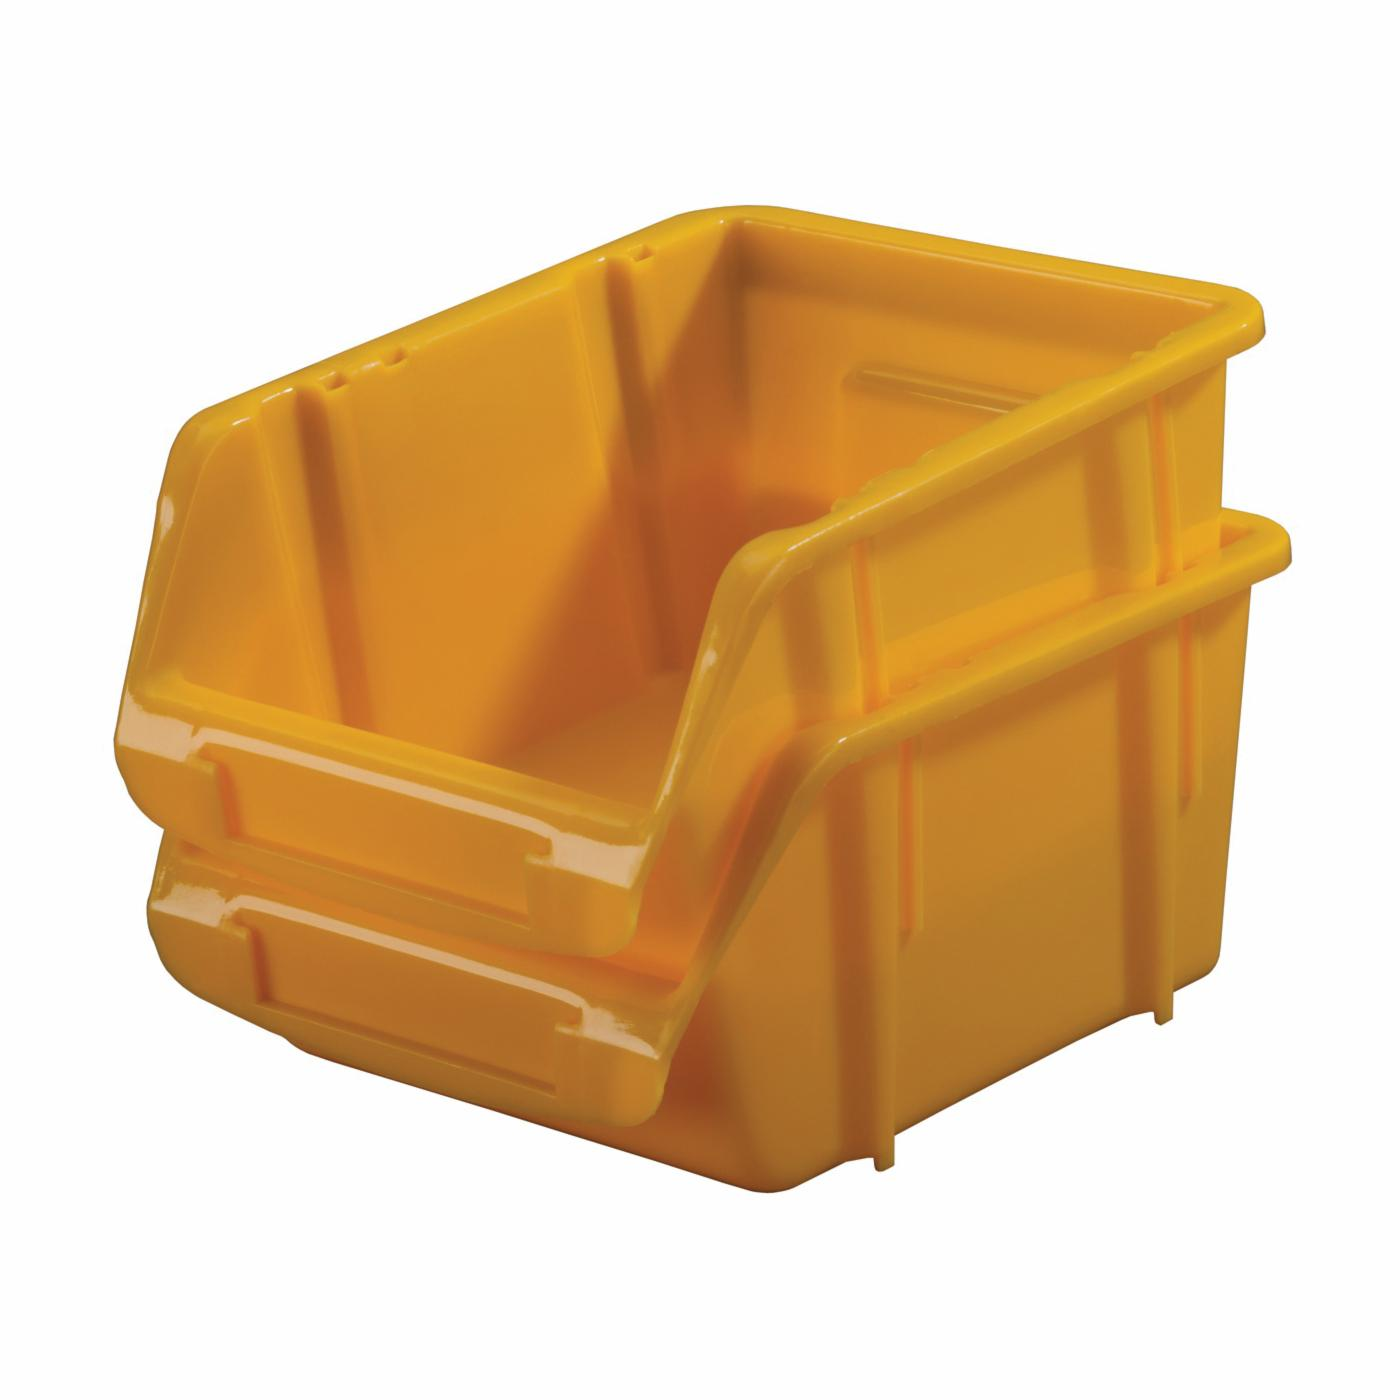 STACK-ON PRODUCTS BIN-1507